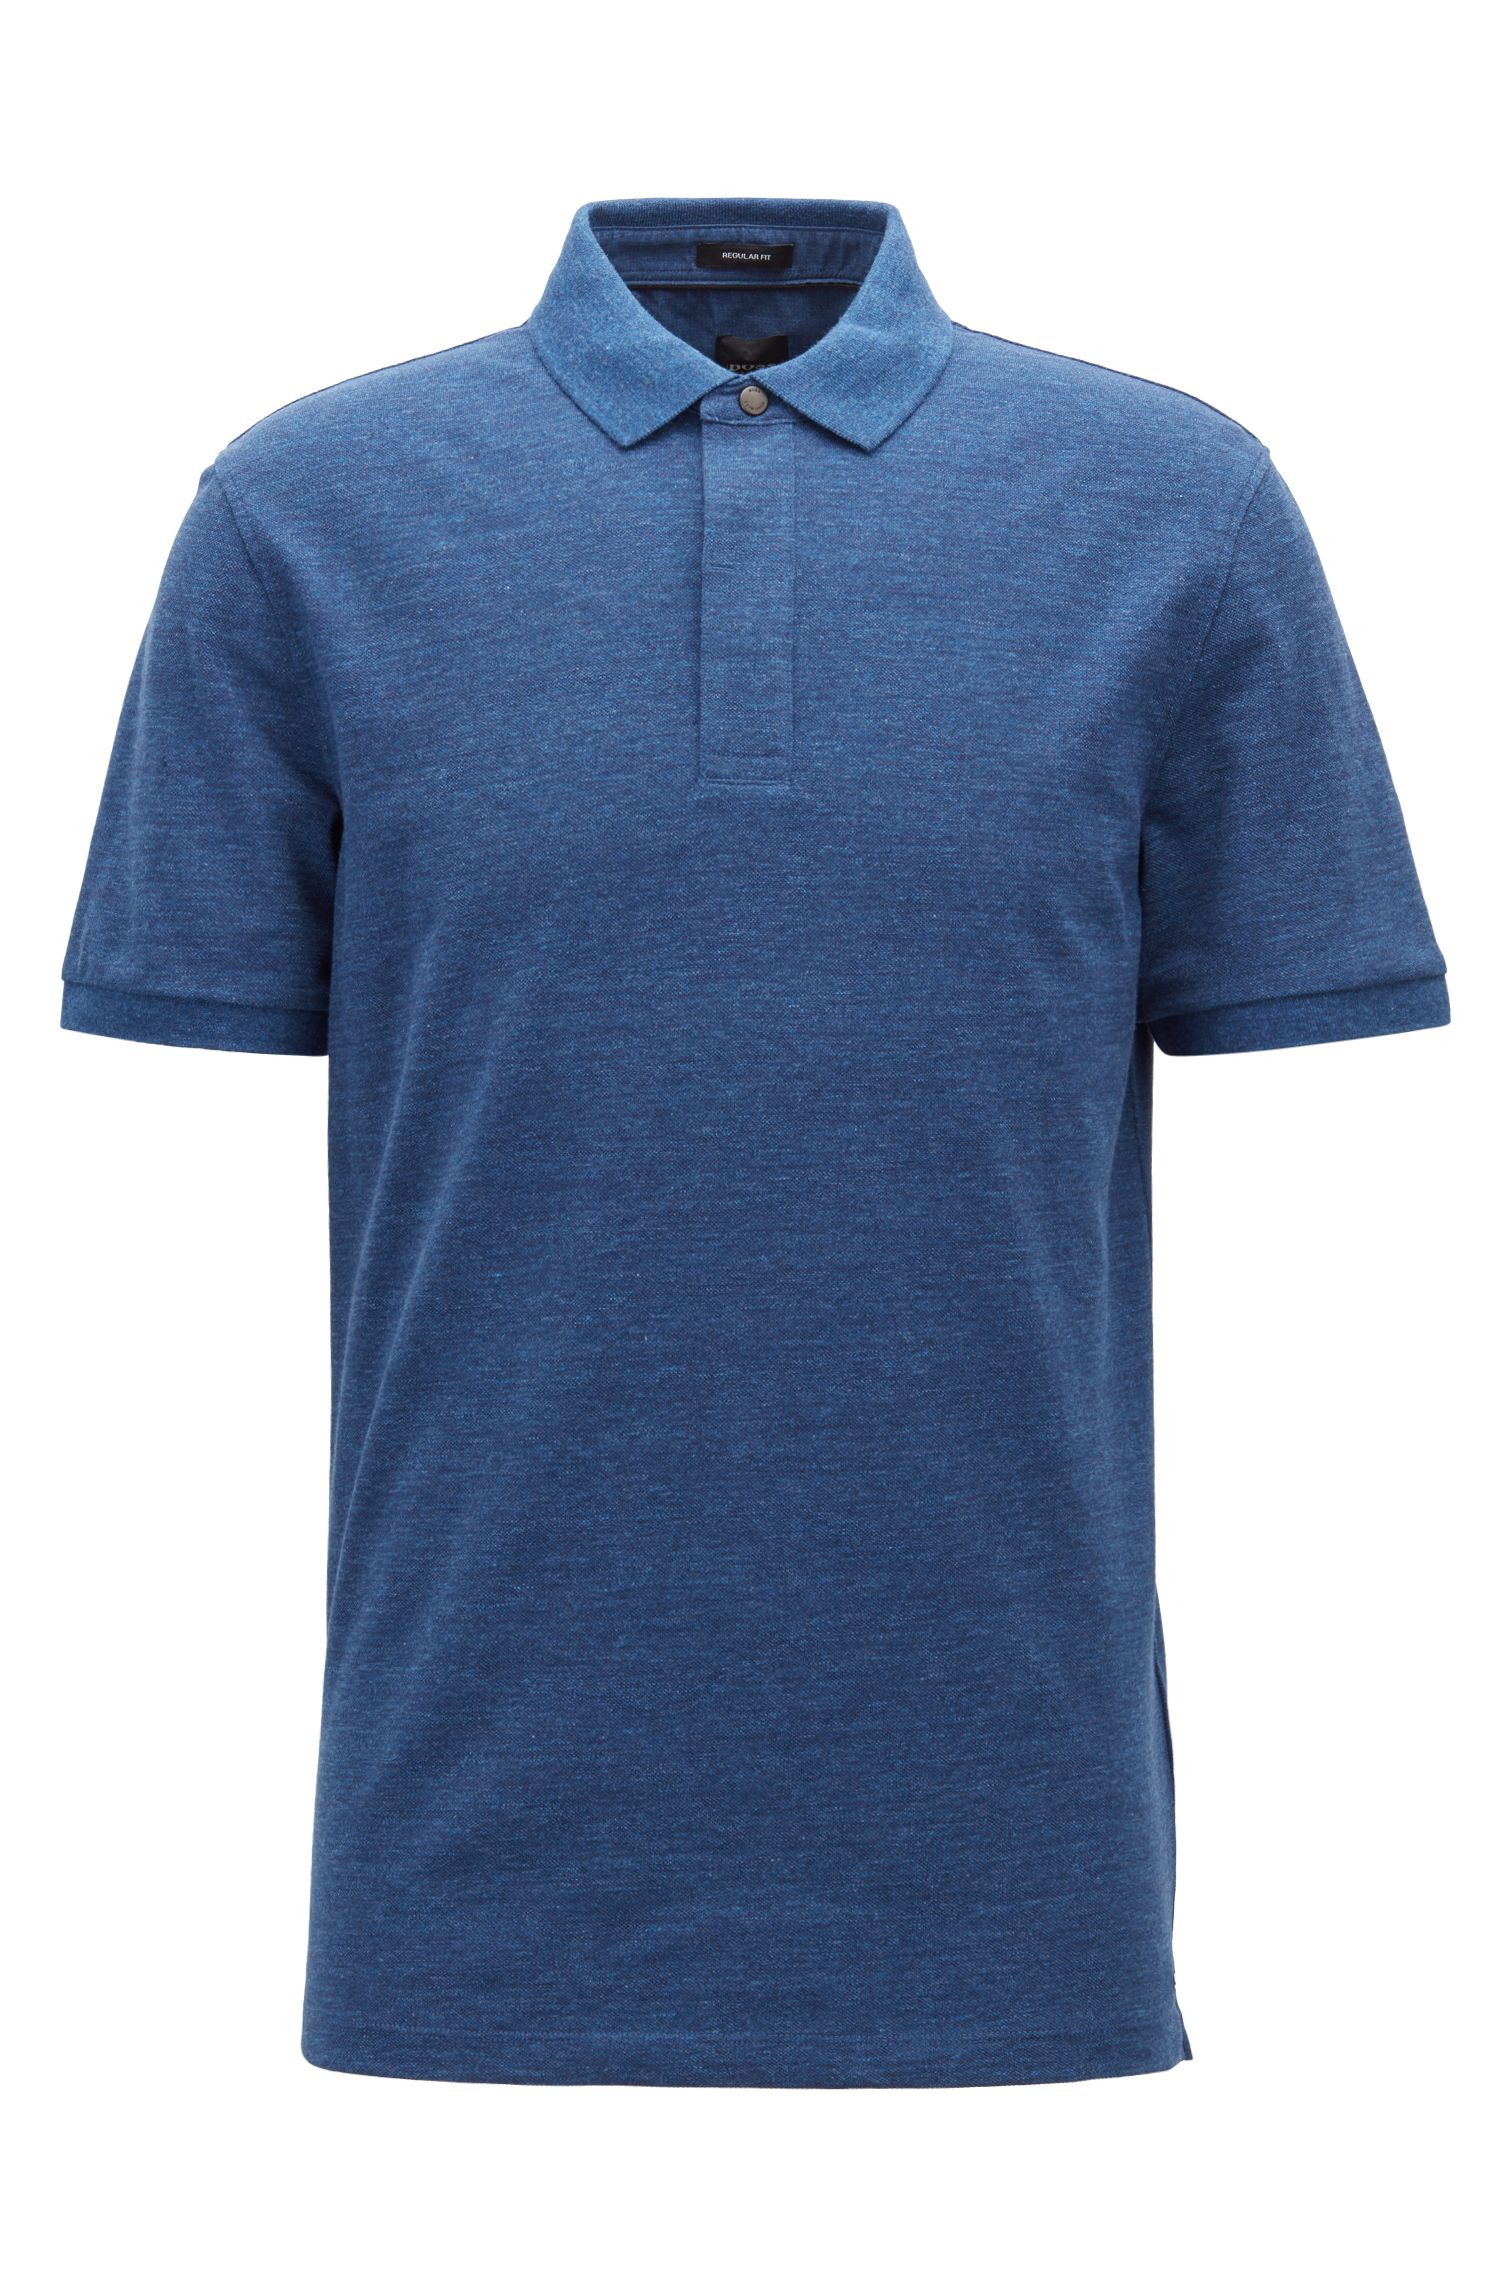 Denim-effect polo shirt with press-stud closure, Blue